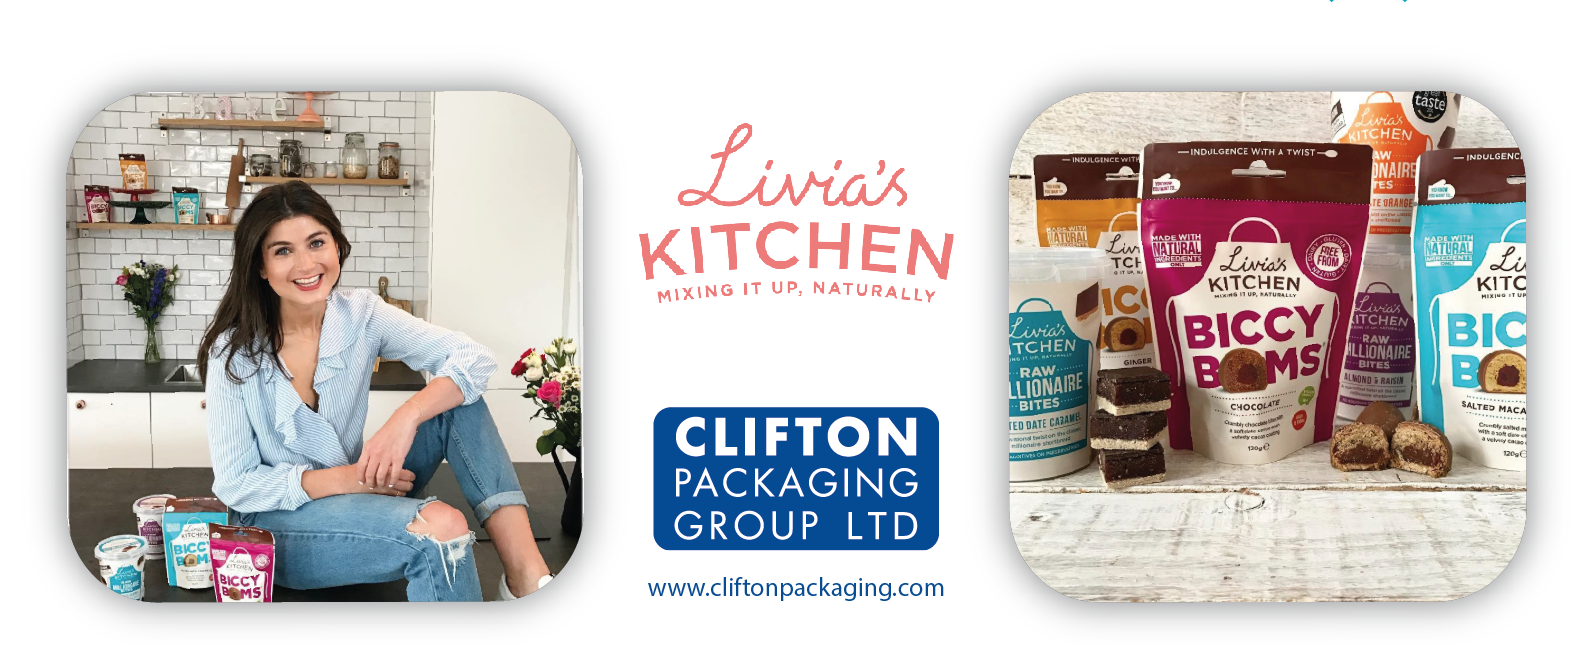 Livia's Kitchen, Clifton Packaging Group LTD. Flexible Packaging, Packaging